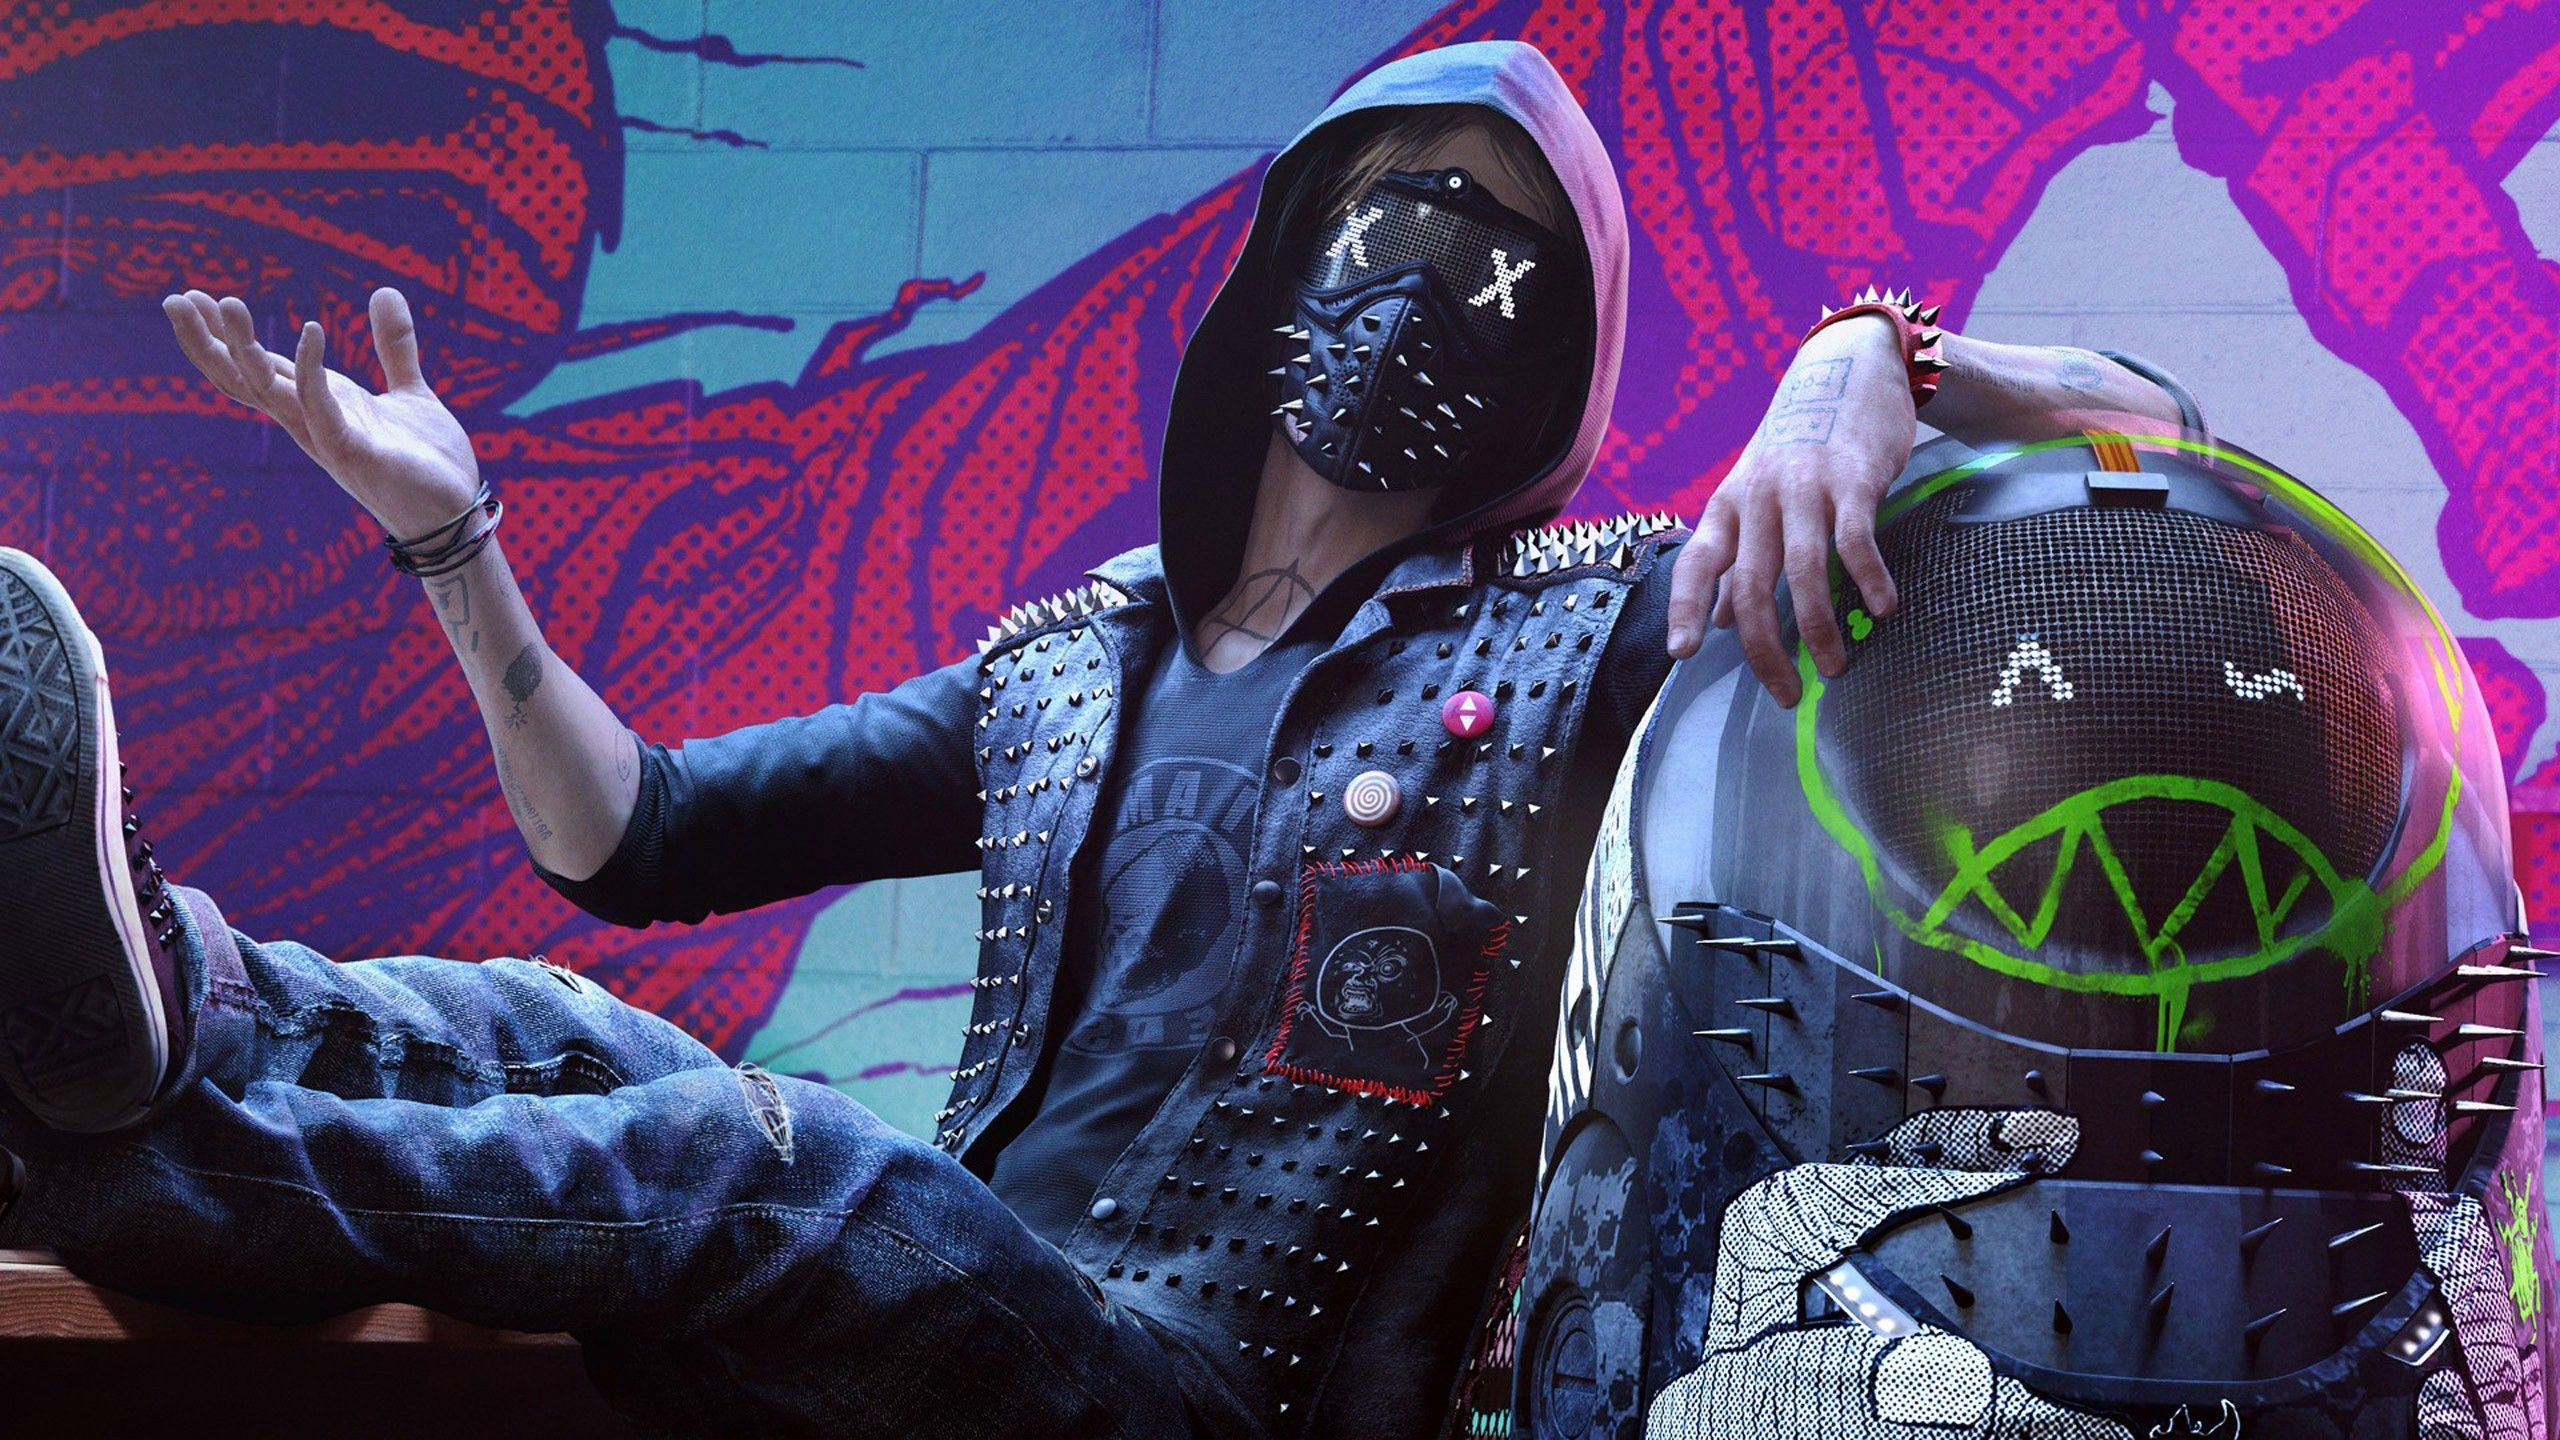 Wrench Watch Dogs Wallpapers Wallpaper Cave